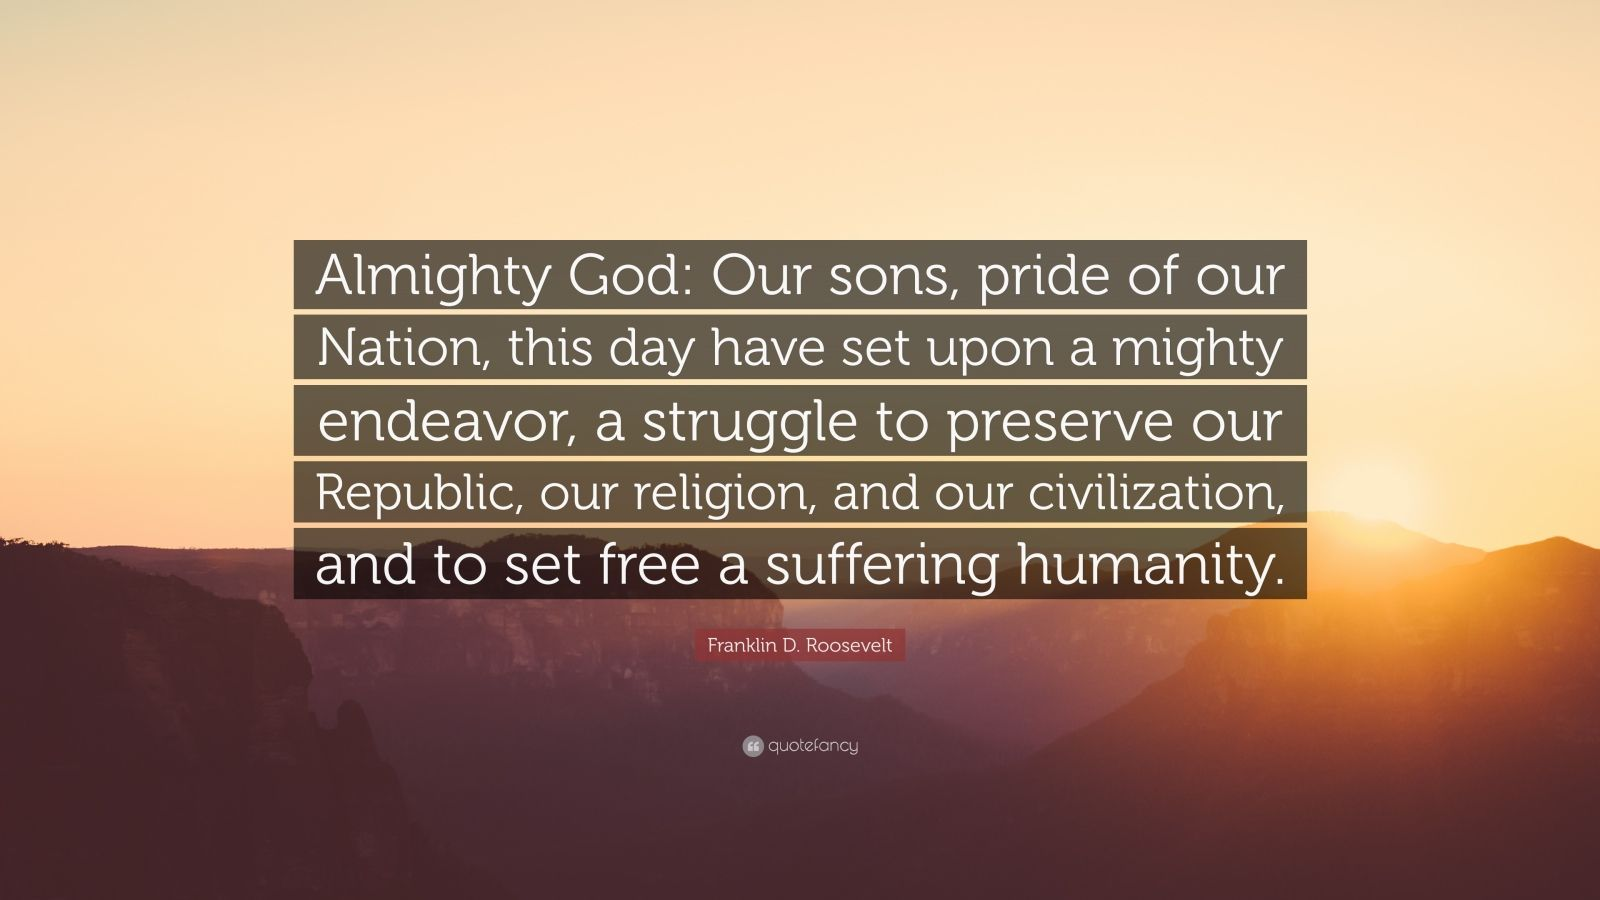 """Franklin D. Roosevelt Quote: """"Almighty God: Our sons, pride of our Nation, this day have set upon a mighty endeavor, a struggle to preserve our Republic, our religion, and our civilization, and to set free a suffering humanity."""""""